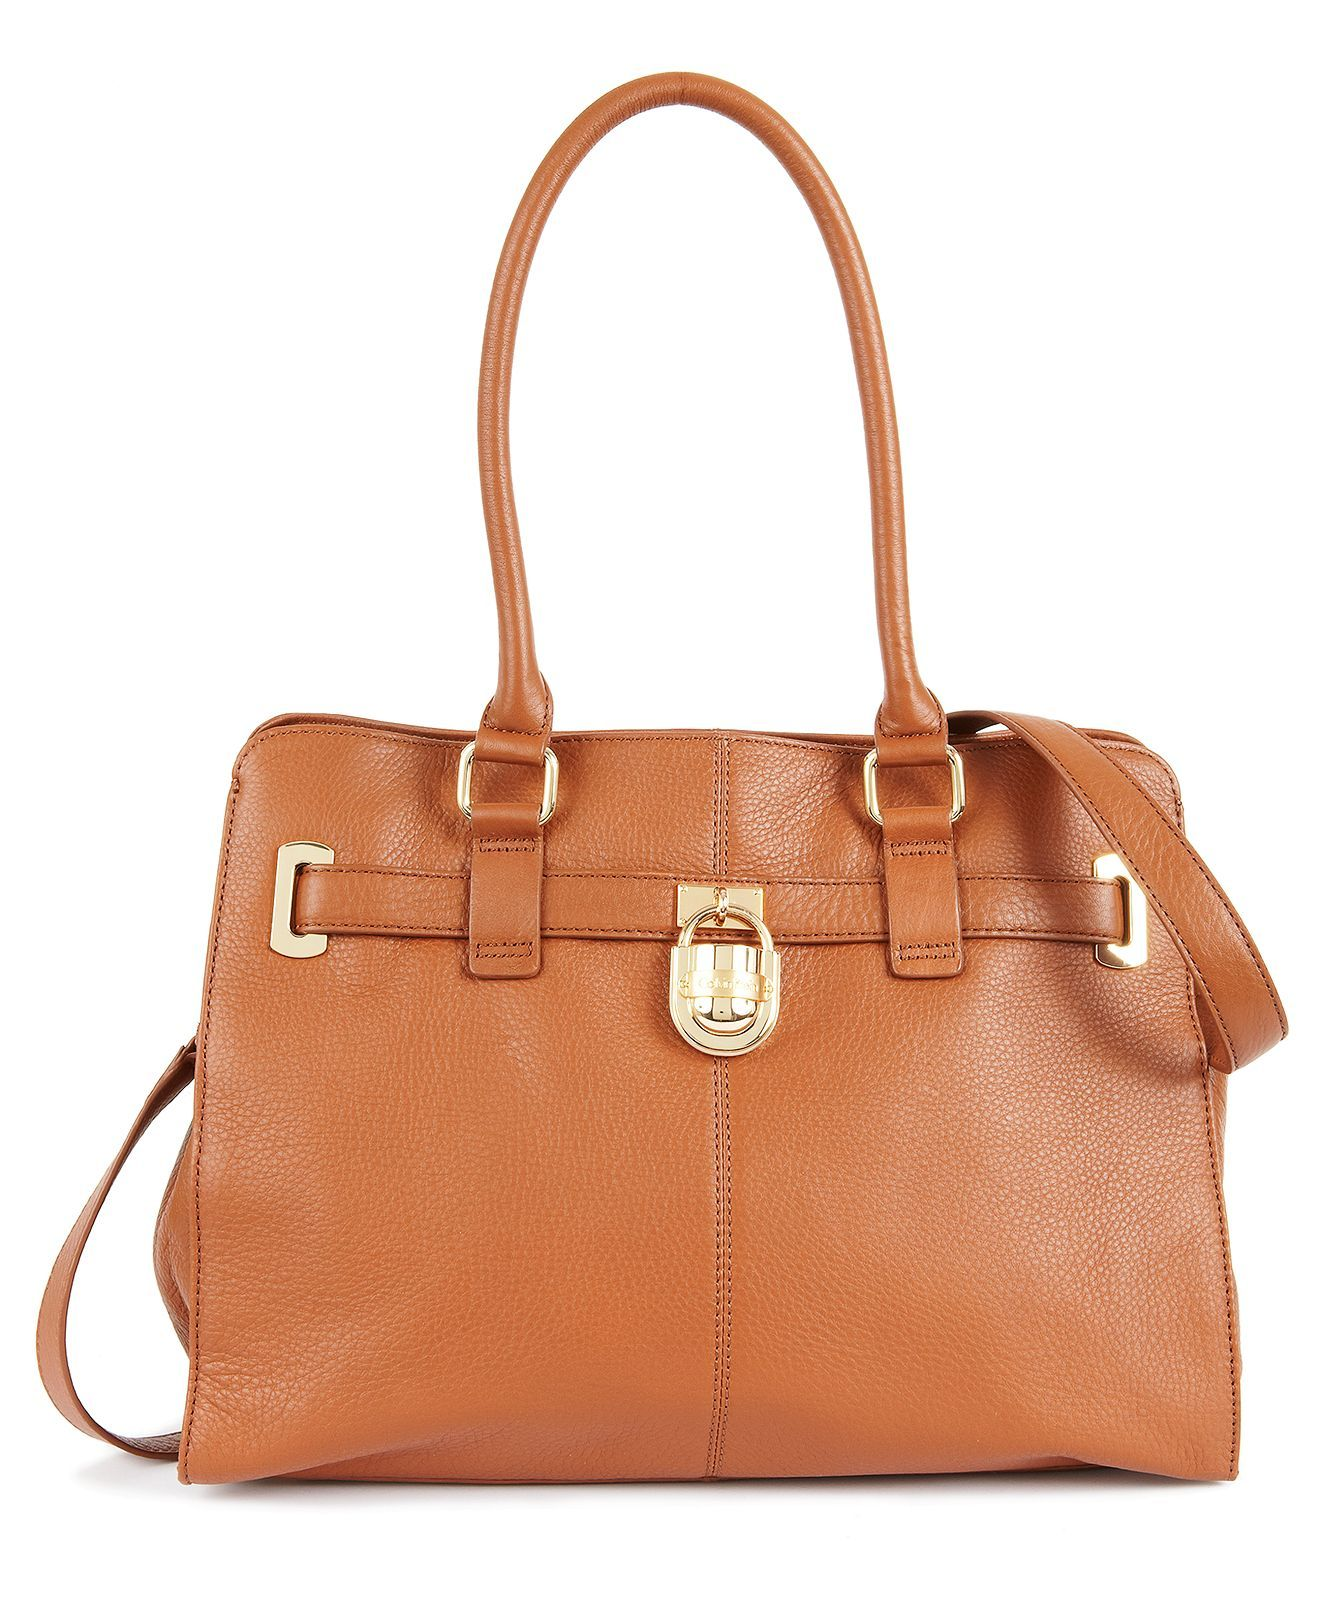 bf9988af6b $250 Calvin Klein Handbag, Modena Leather Tote - Handbags & Accessories -  Macy's